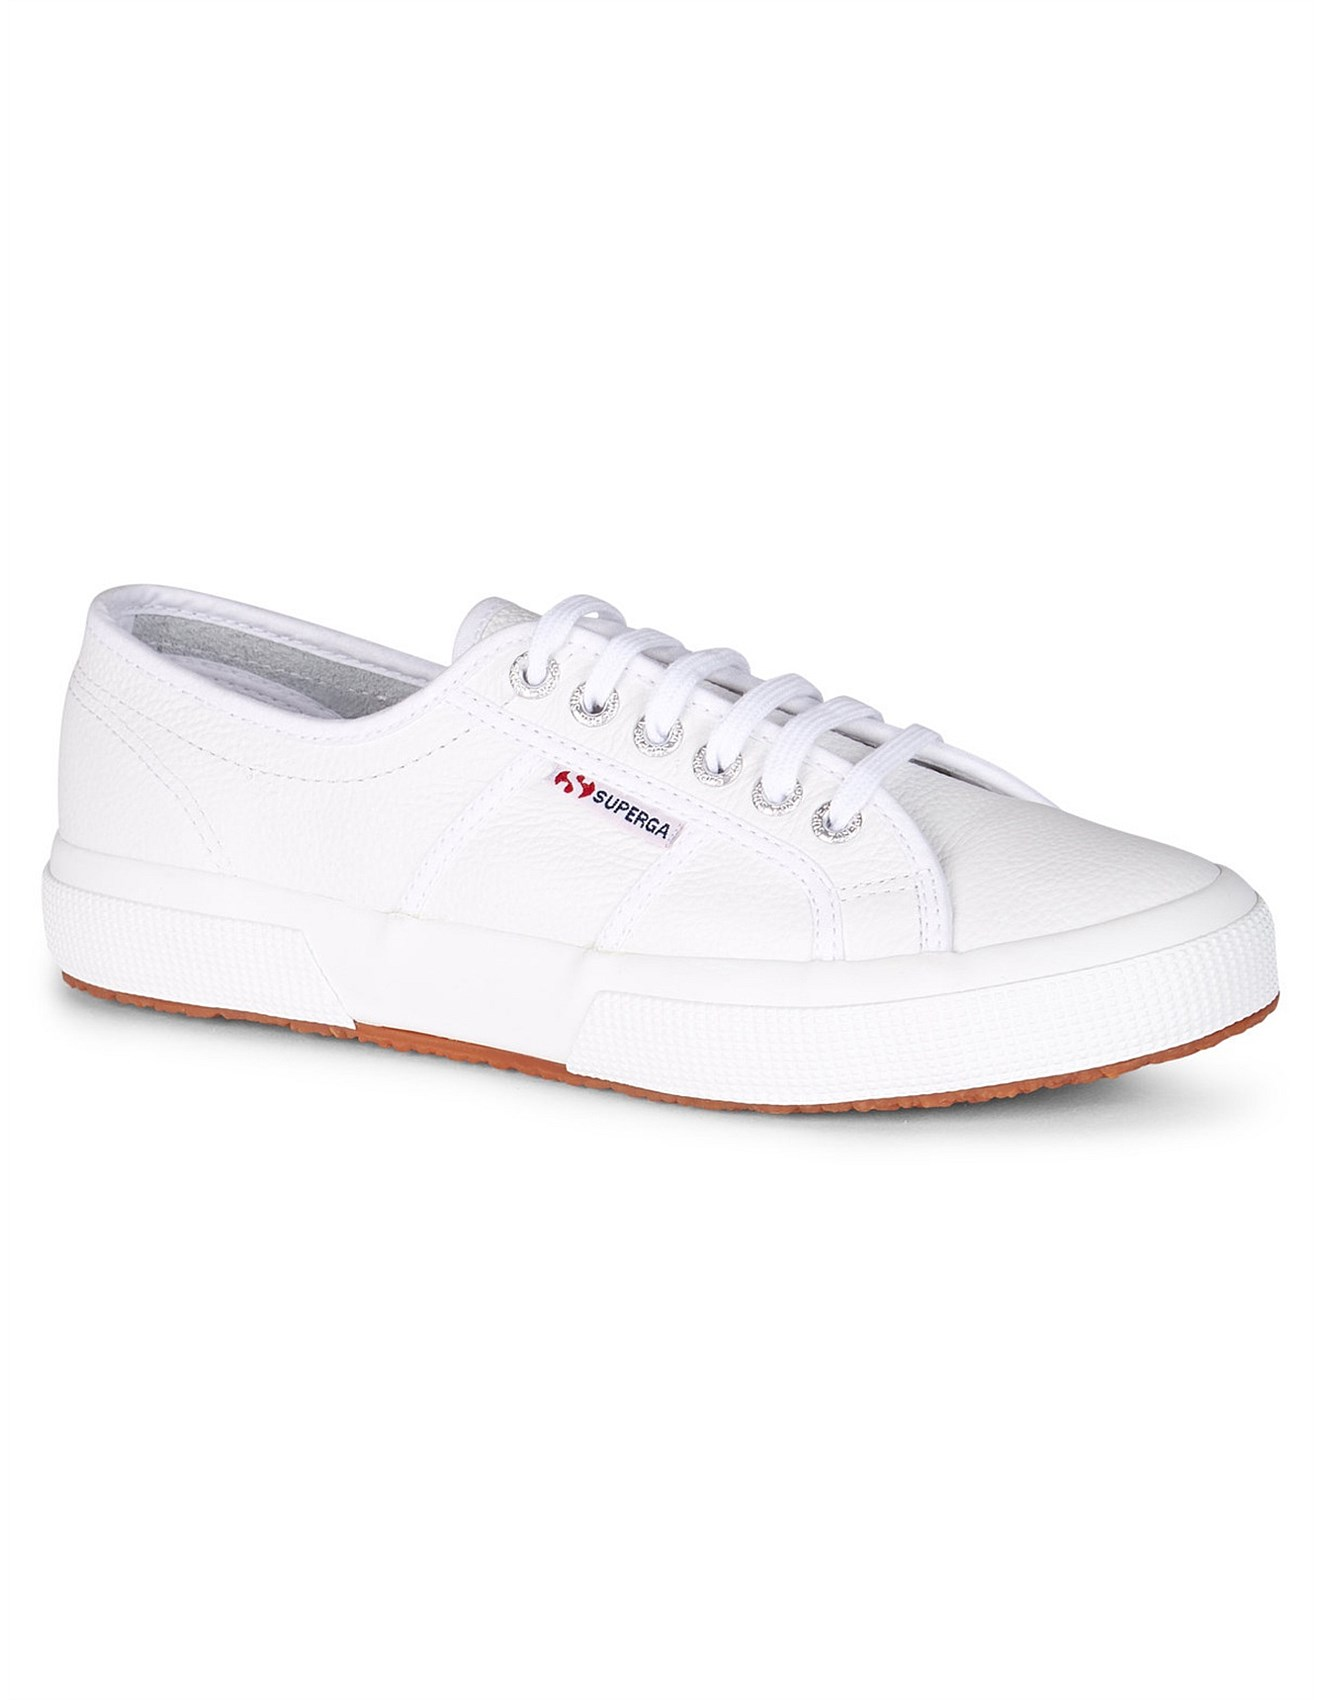 889ea3f2c0737 2750 - Cotu Classic Sneaker Leather